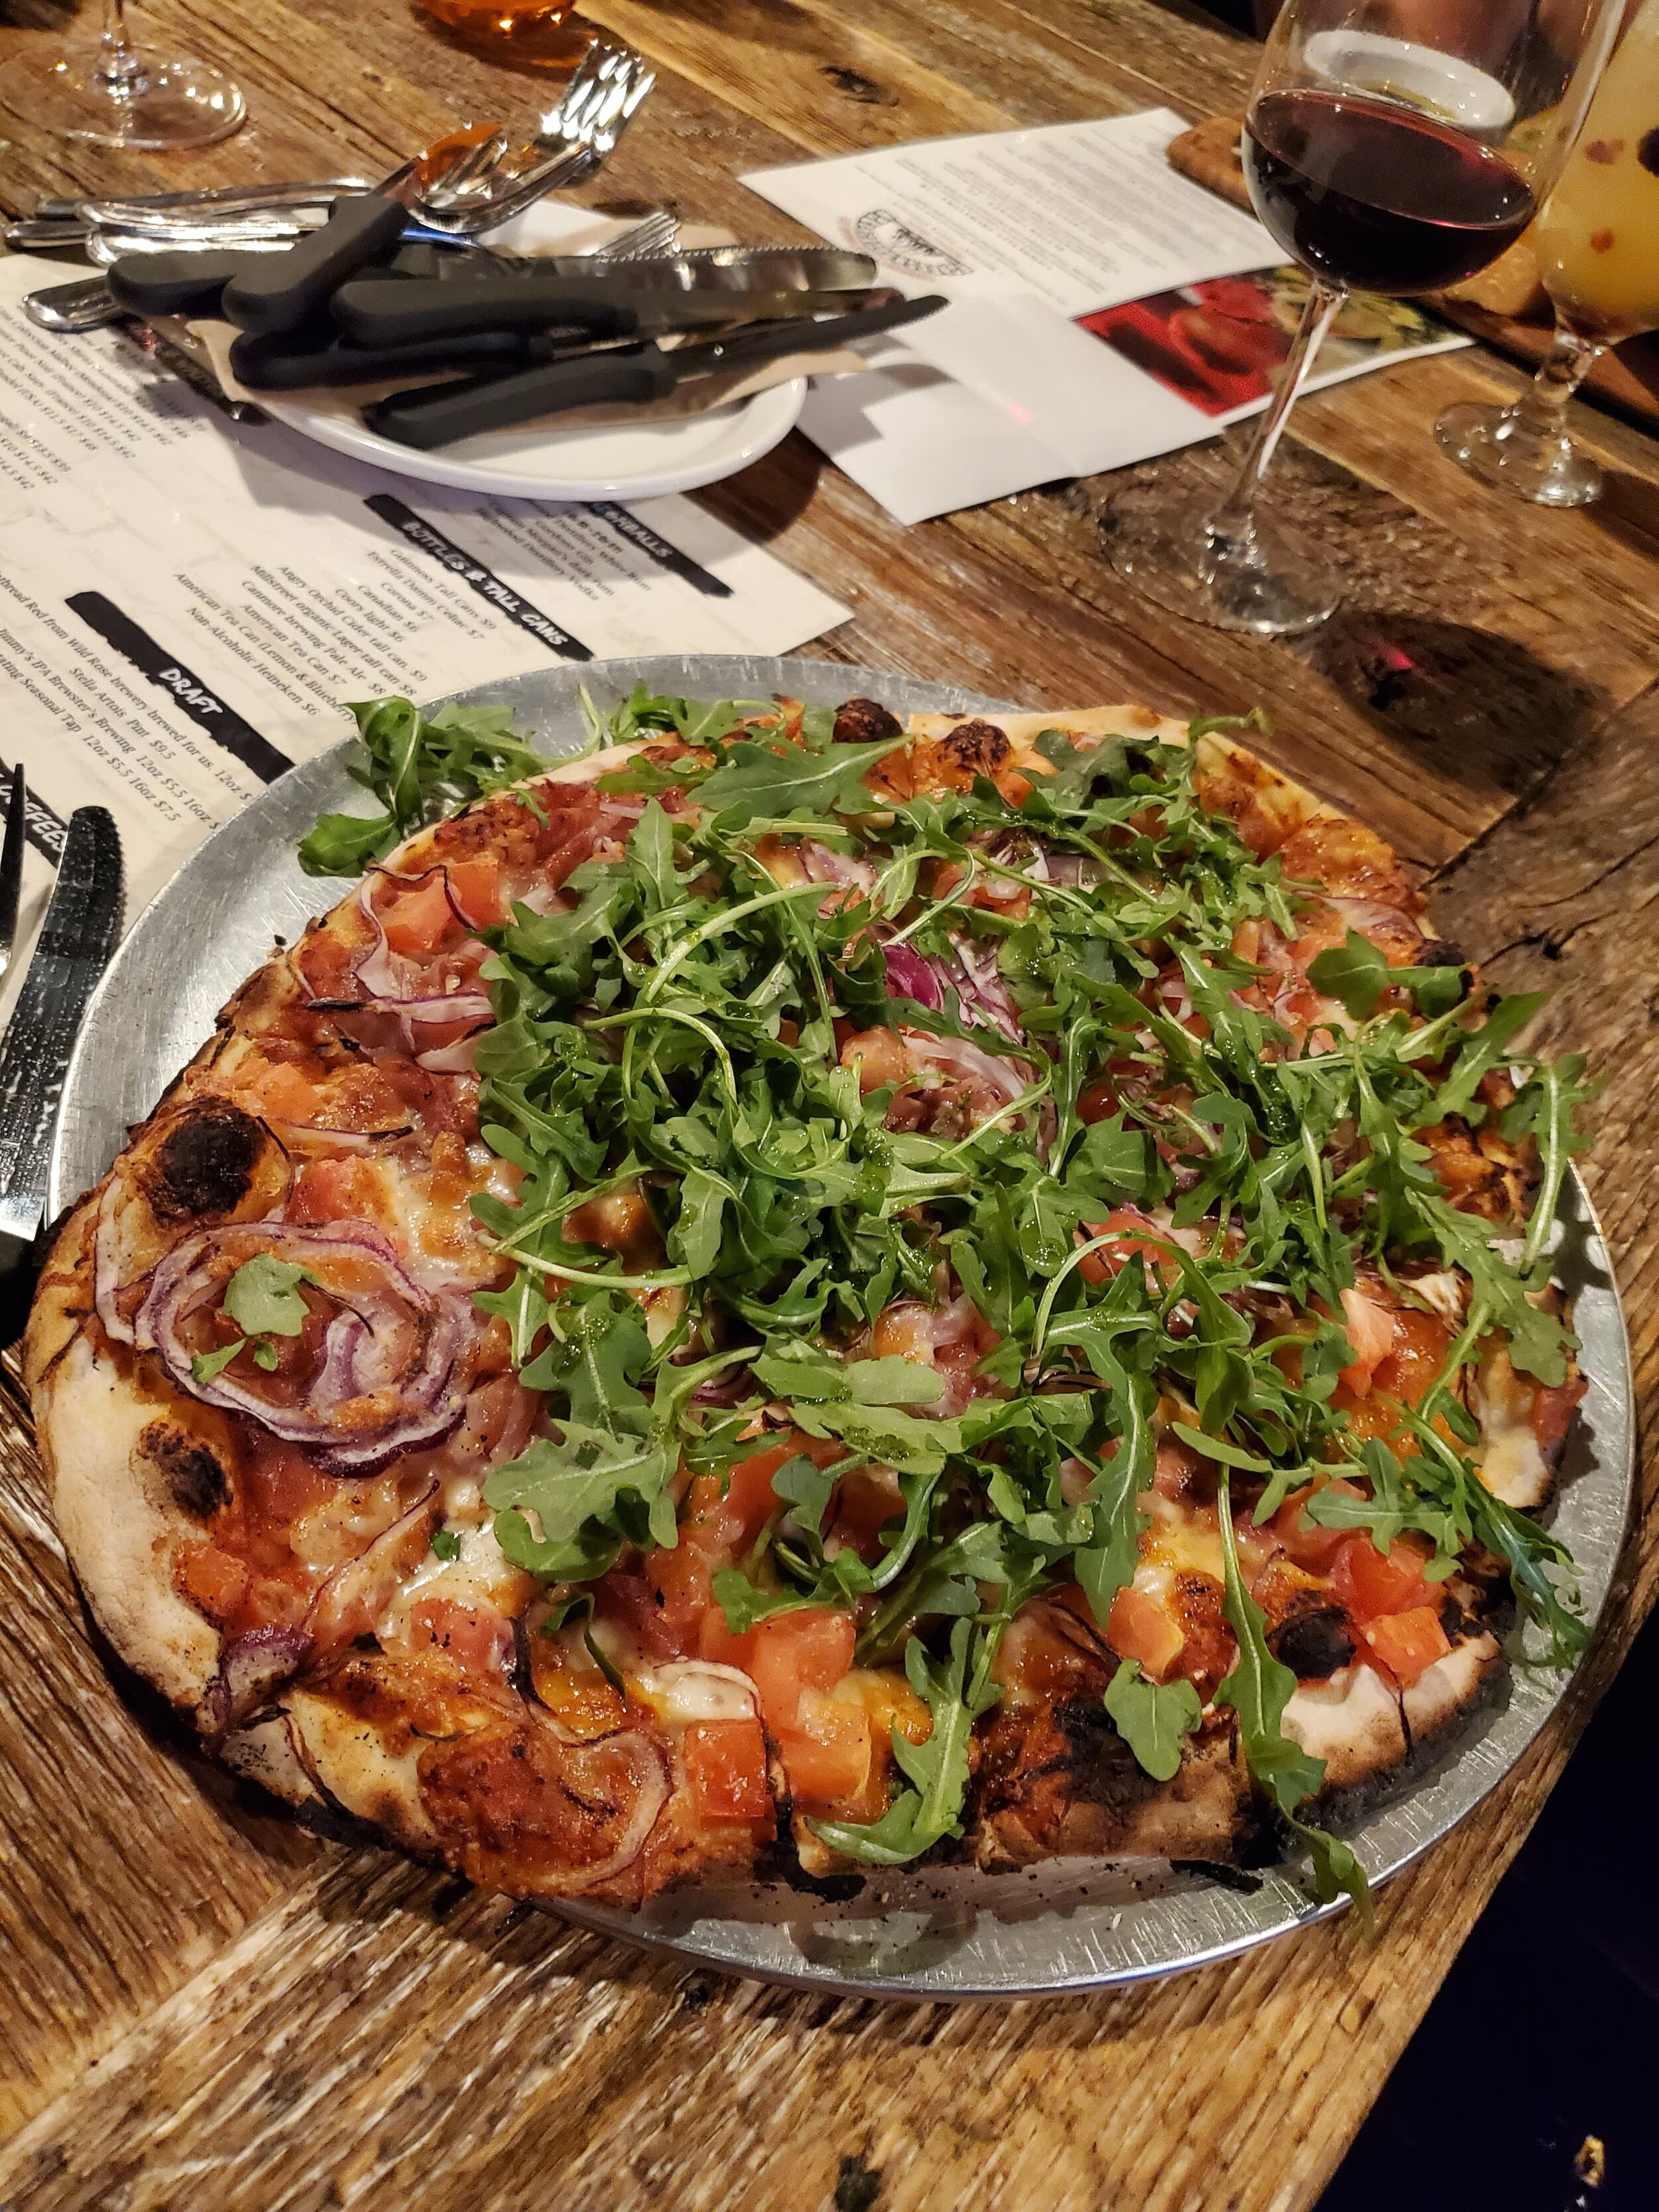 Community Flatbread Company - #1, 85 First Street E. |(403) 932-1508 - Pizza Pictured: The TuscanIf the atmosphere of this restaurant doesn't do it for you, all bets are off once you've tested their pastas and flatbreads! Nothing beats a huge pizza oven!Kids eat free with adult purchase on Sundays too!Rating - *****Cochrane's best pizza atmosphere!